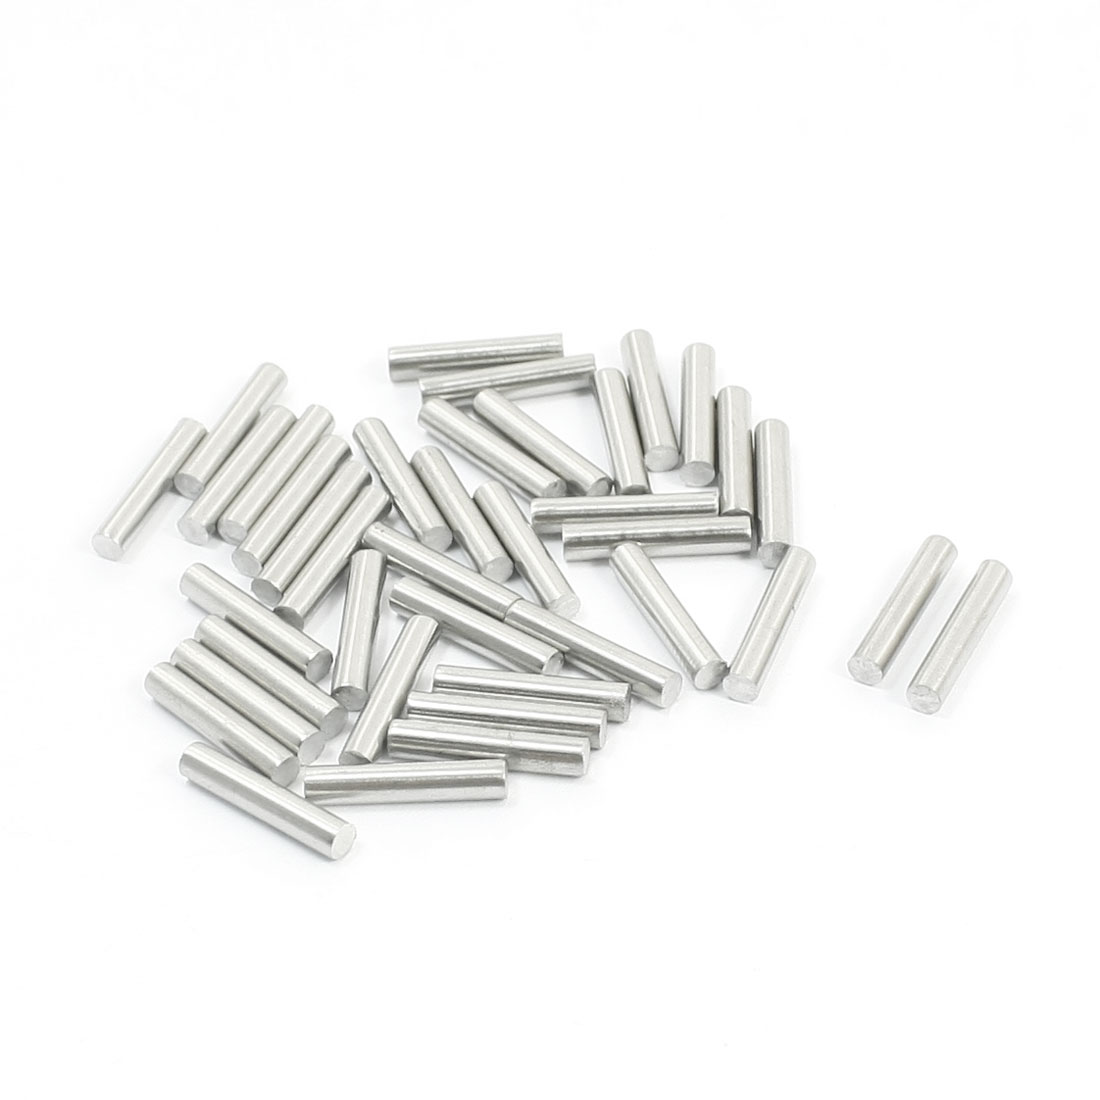 40PCS RC Airplane Parts Stainless Steel Straight Bar Shaft 15mm x 3mm